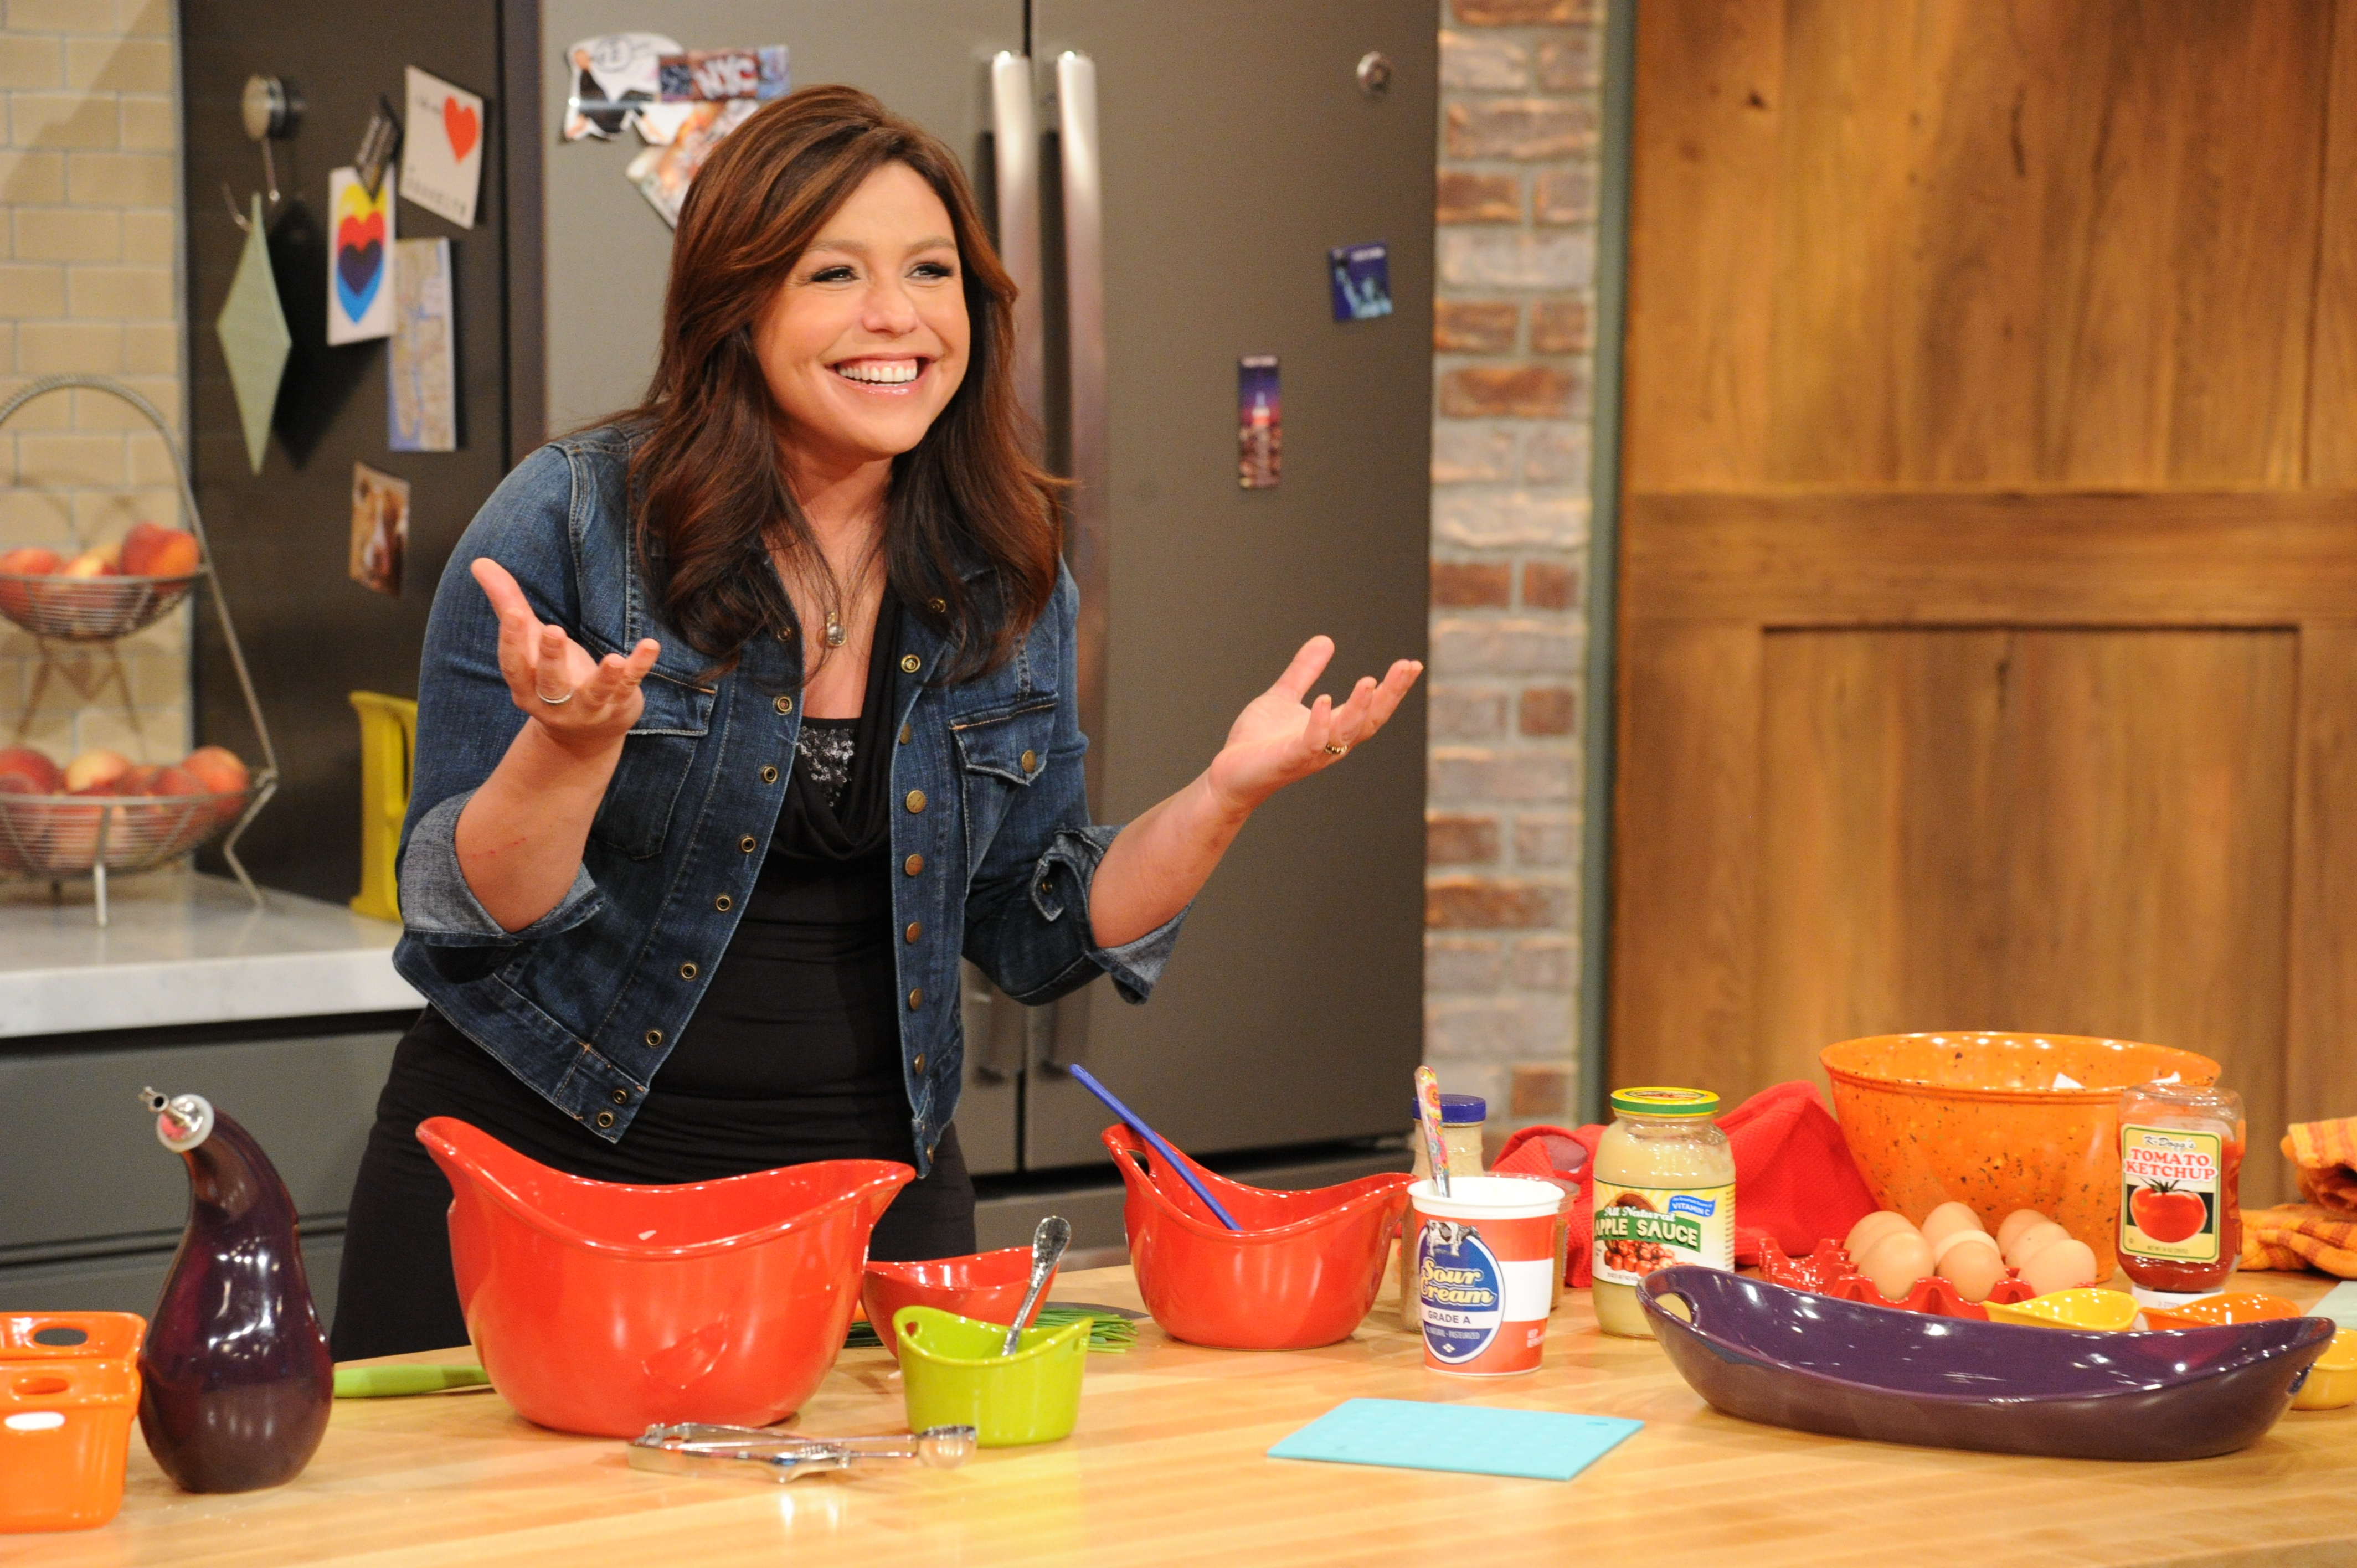 Rachael Ray Kitchen | 10 Things I Learned About Making 30 Minute Meals From Rachael Ray